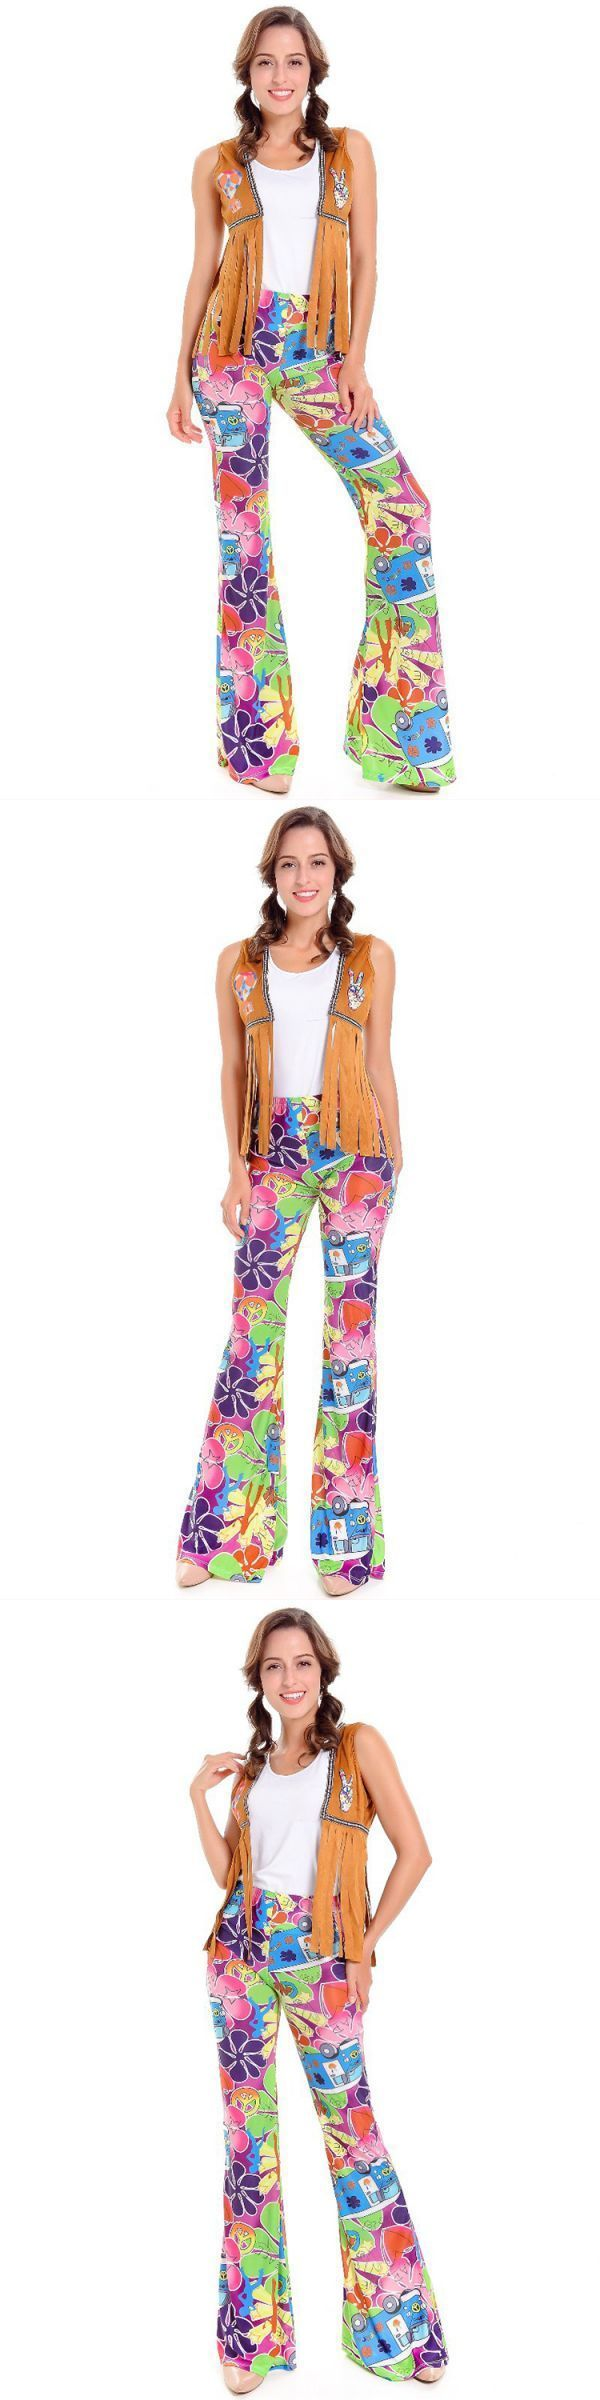 Buy jumpsuits and playsuits online  vintage women disco hippie halloween carnival costume #jumpsuits #amp; #playsuits #online #jumpsuits #and #playsuits #cheap #jumpsuits #and #playsuits #fashion #jumpsuits #playsuits #topshop